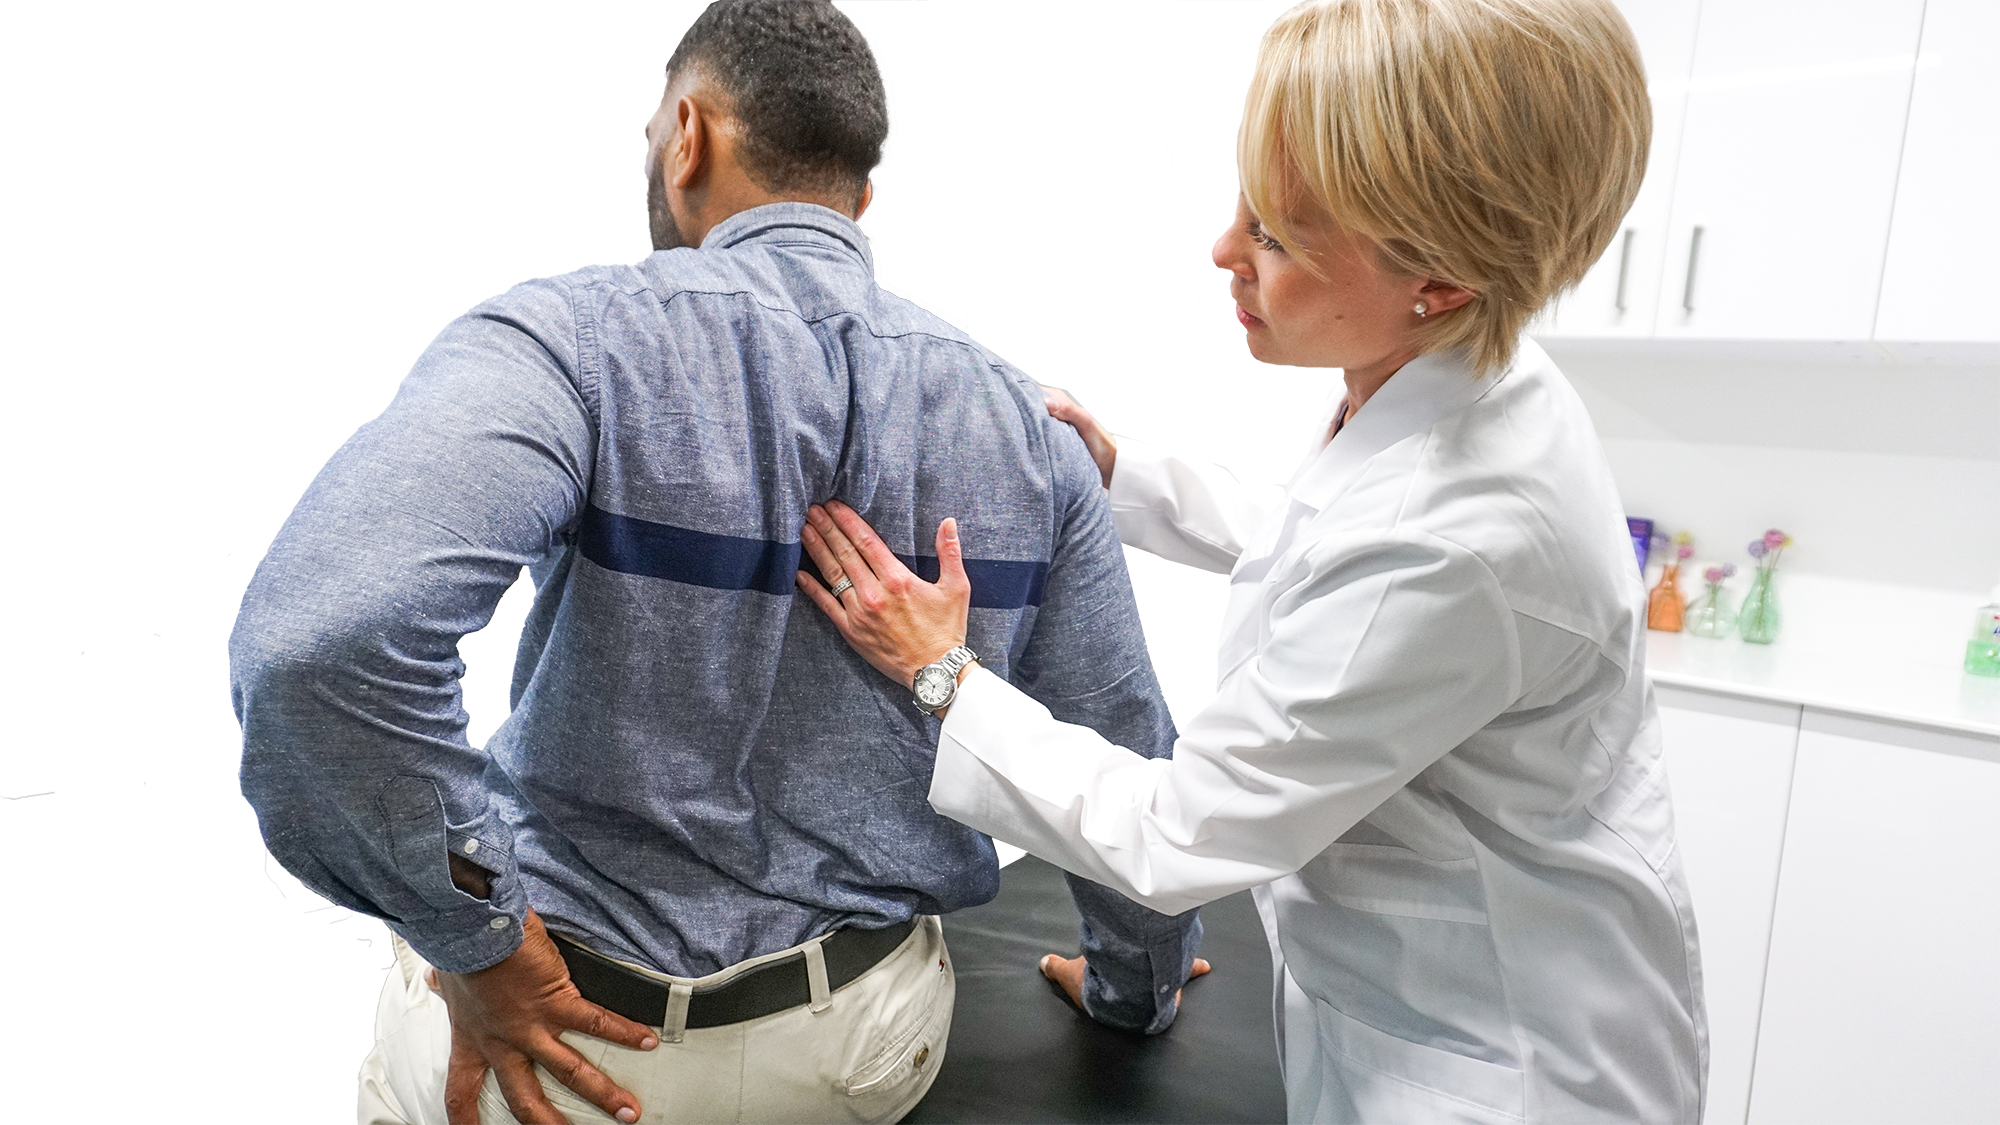 Searching for a sciatica specialist in Clifton? Our dedicated team of Harvard-trained back doctors offer minimally-invasive solutions.